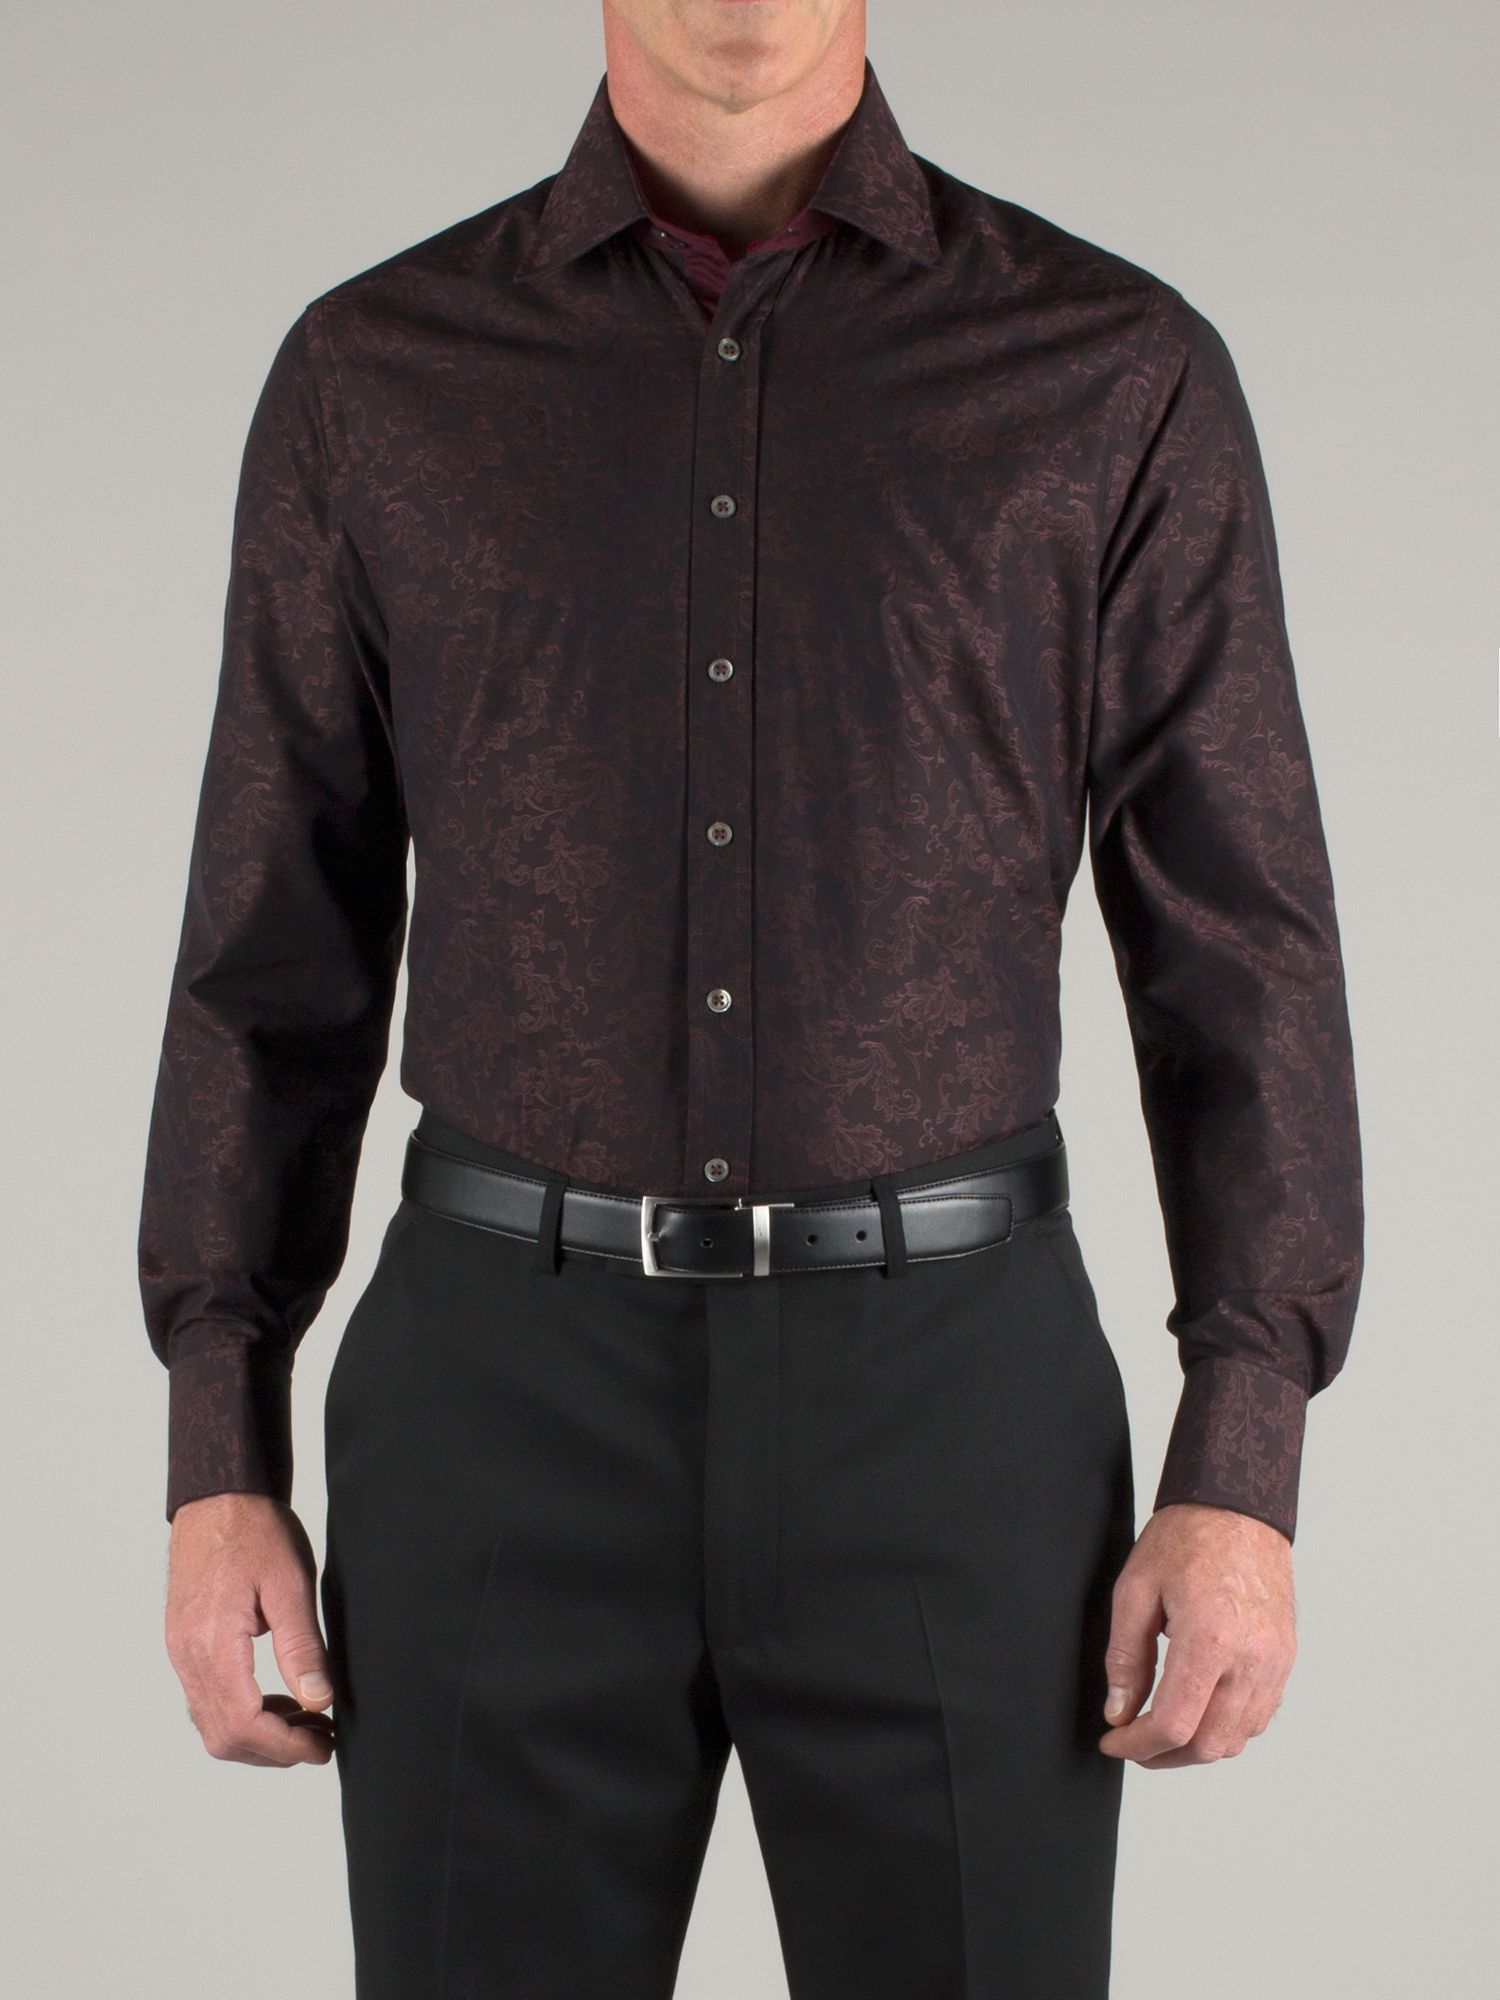 Ornate jacquard shirt